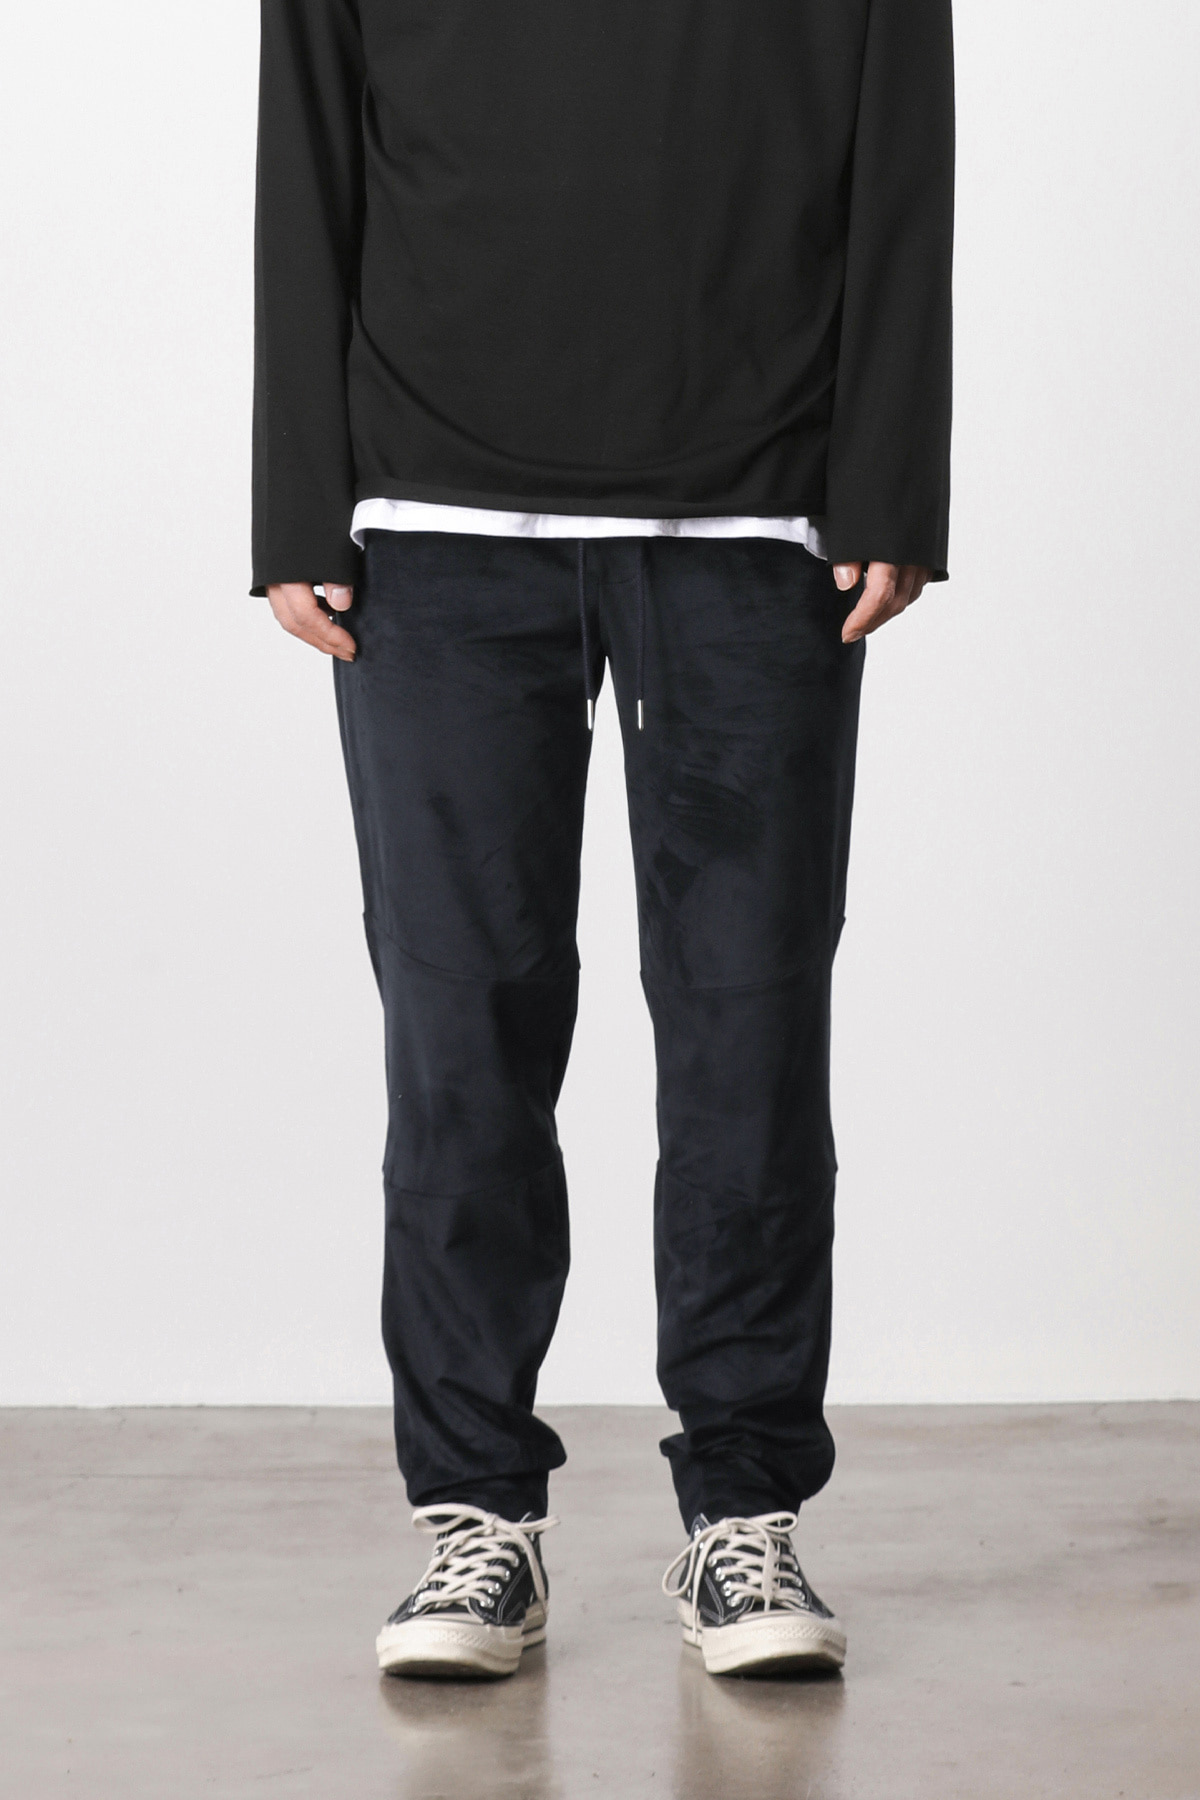 페이탈리즘 #jp06 Suede loose fit pants (navy)